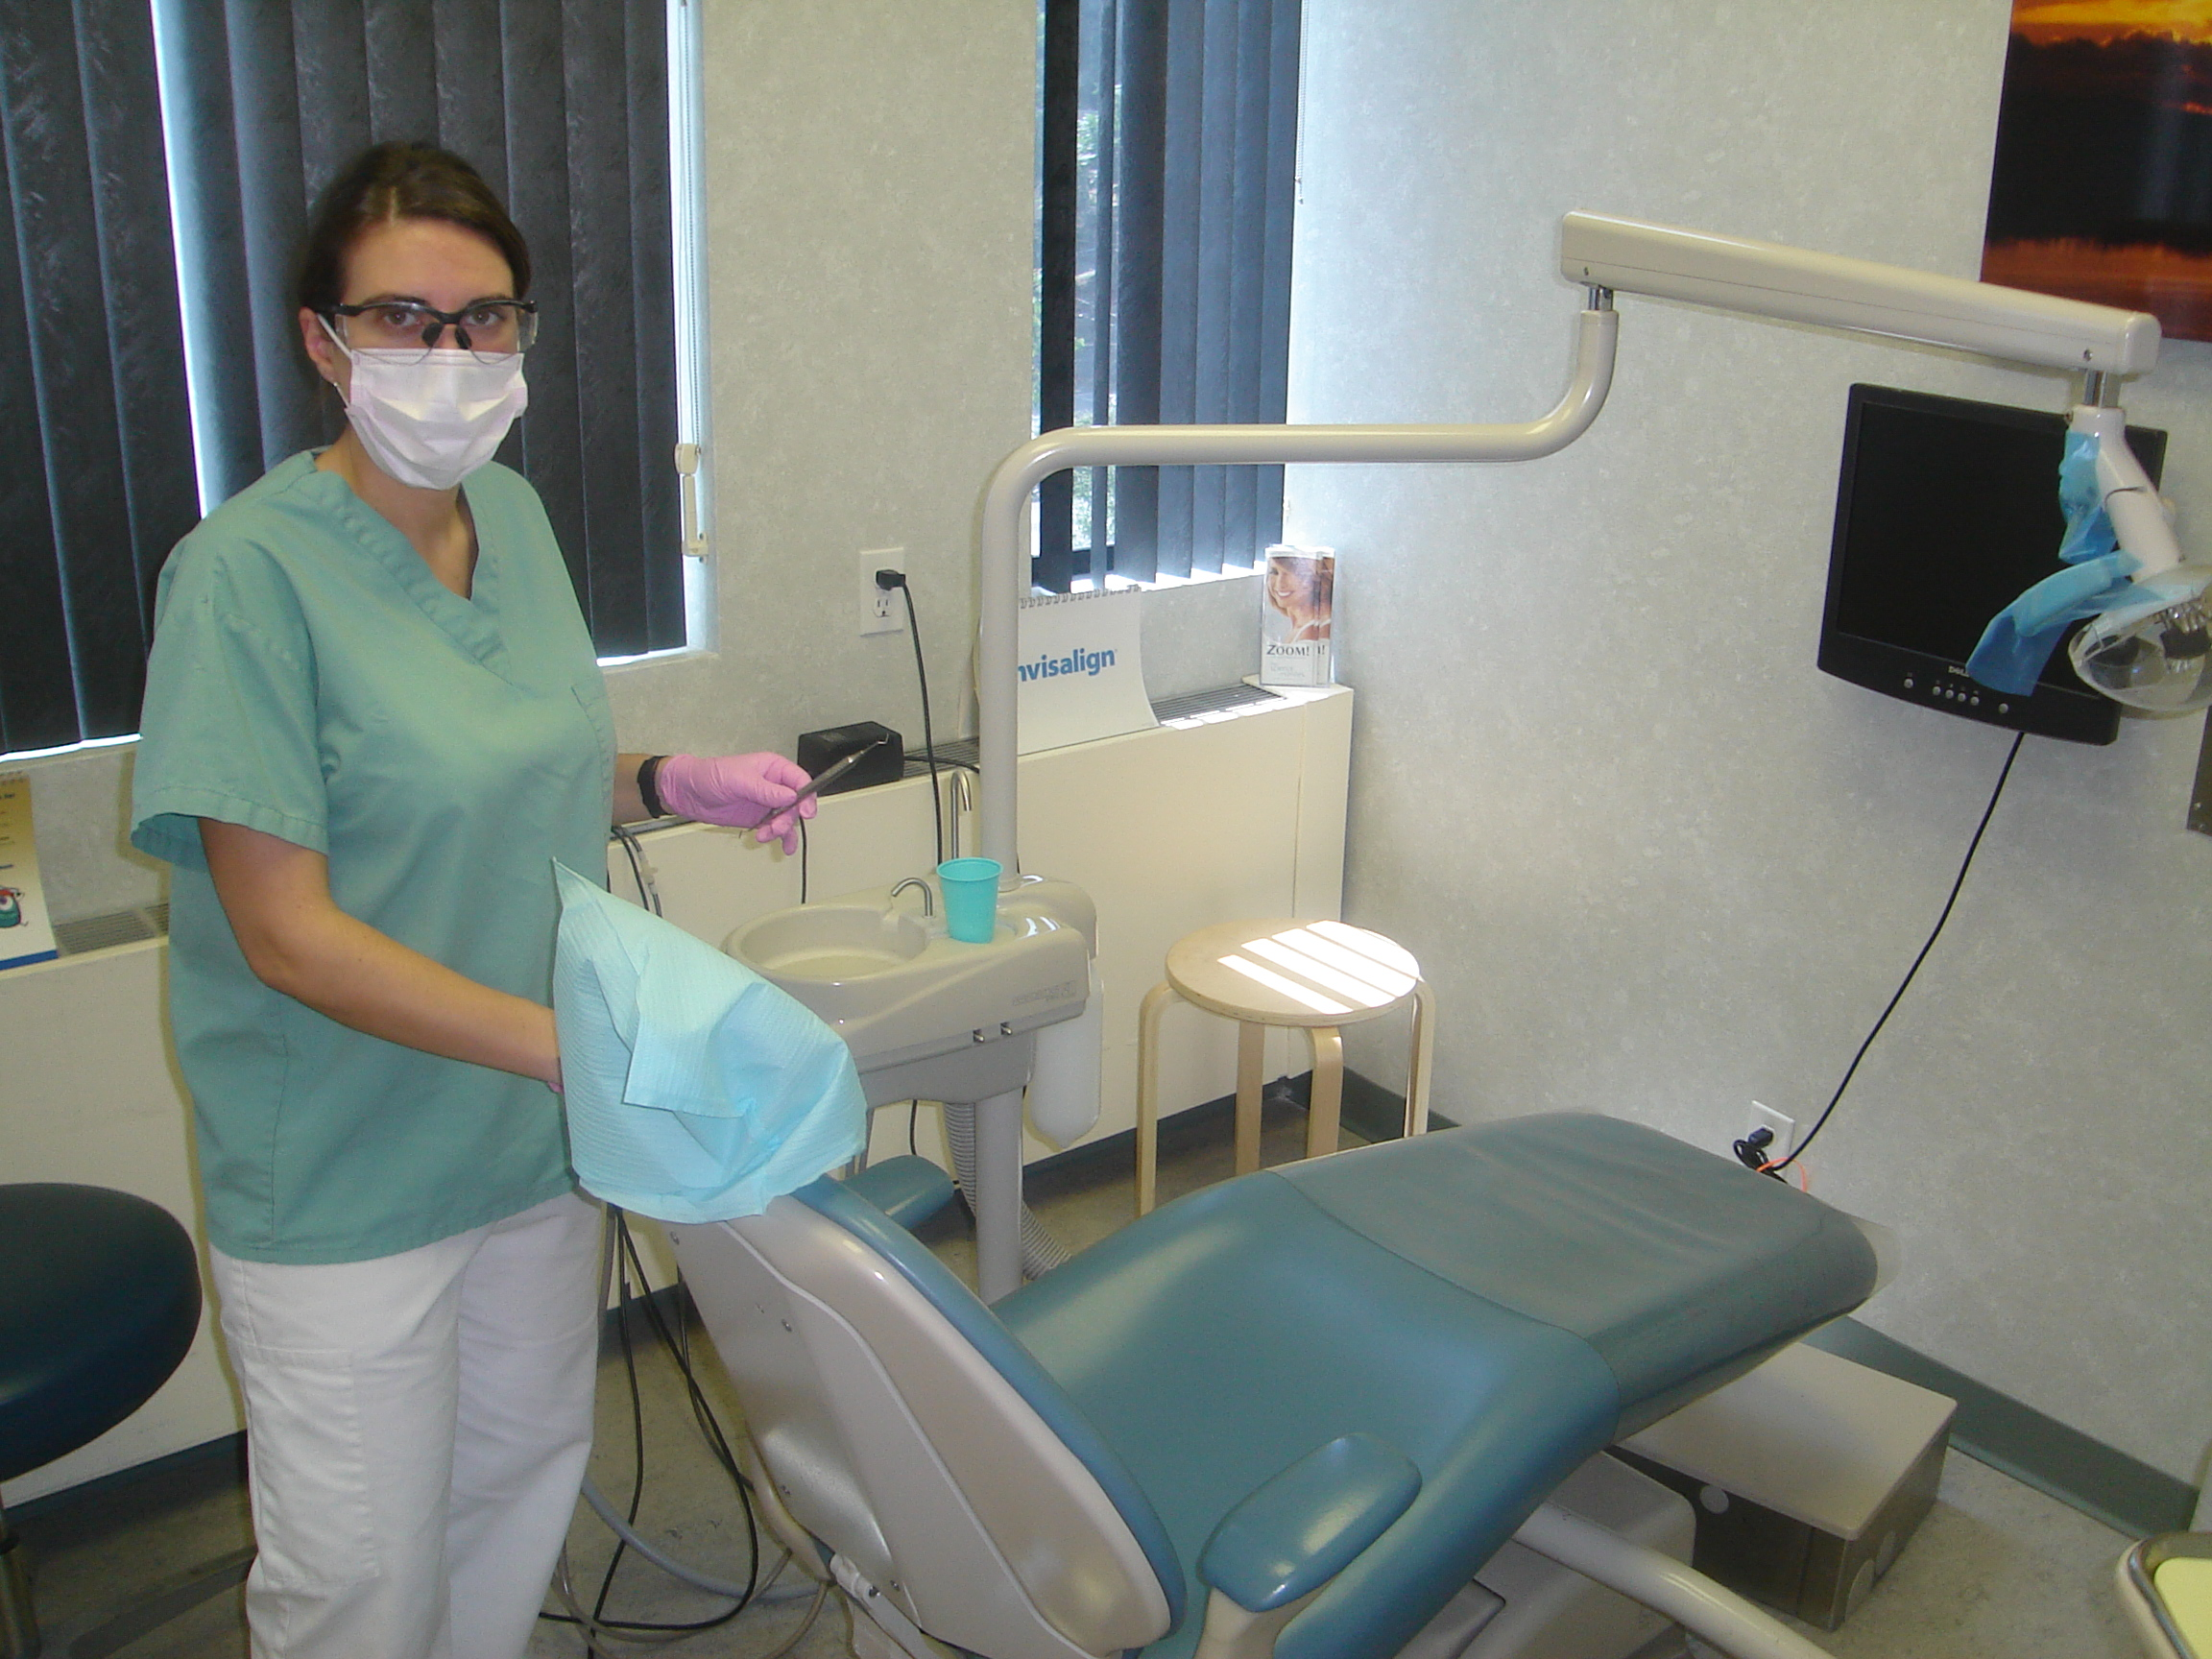 What do Dental Hygienists Do? Dental_hygienist Dental hygienists ...